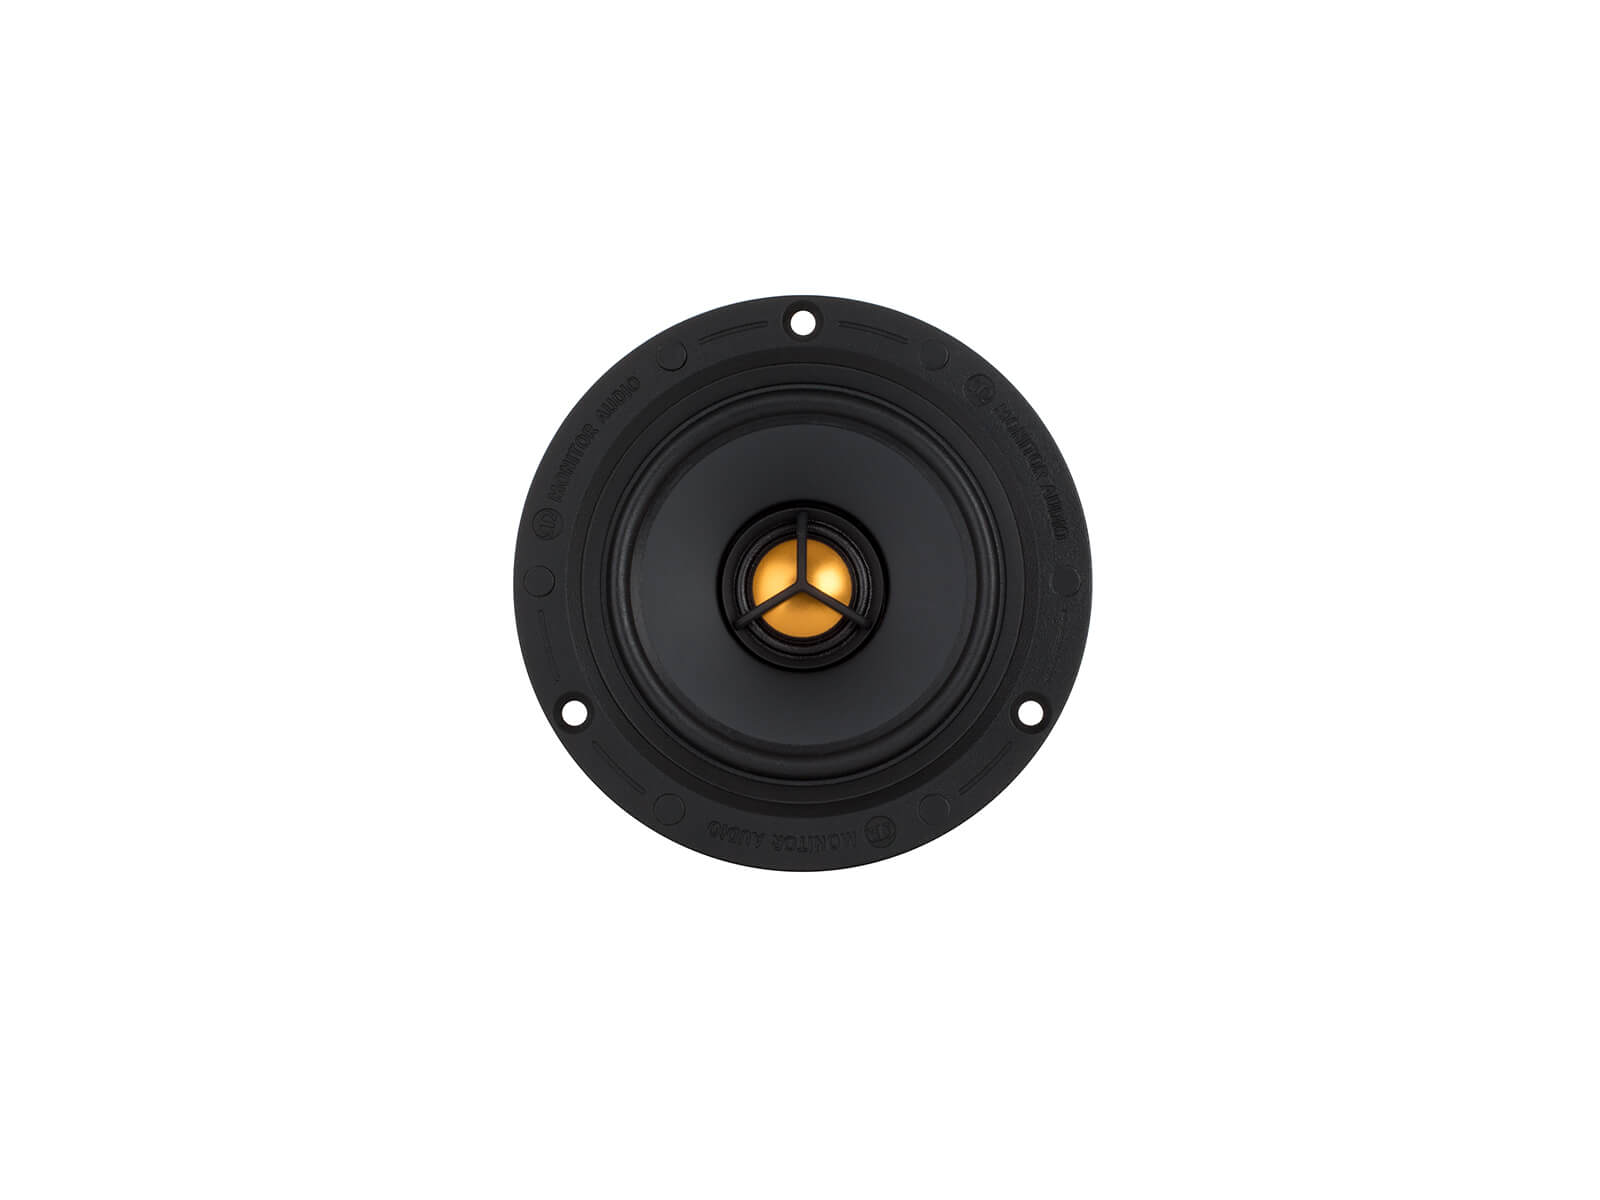 Flush Fit CF230, front-on, grille-less in-ceiling speakers.